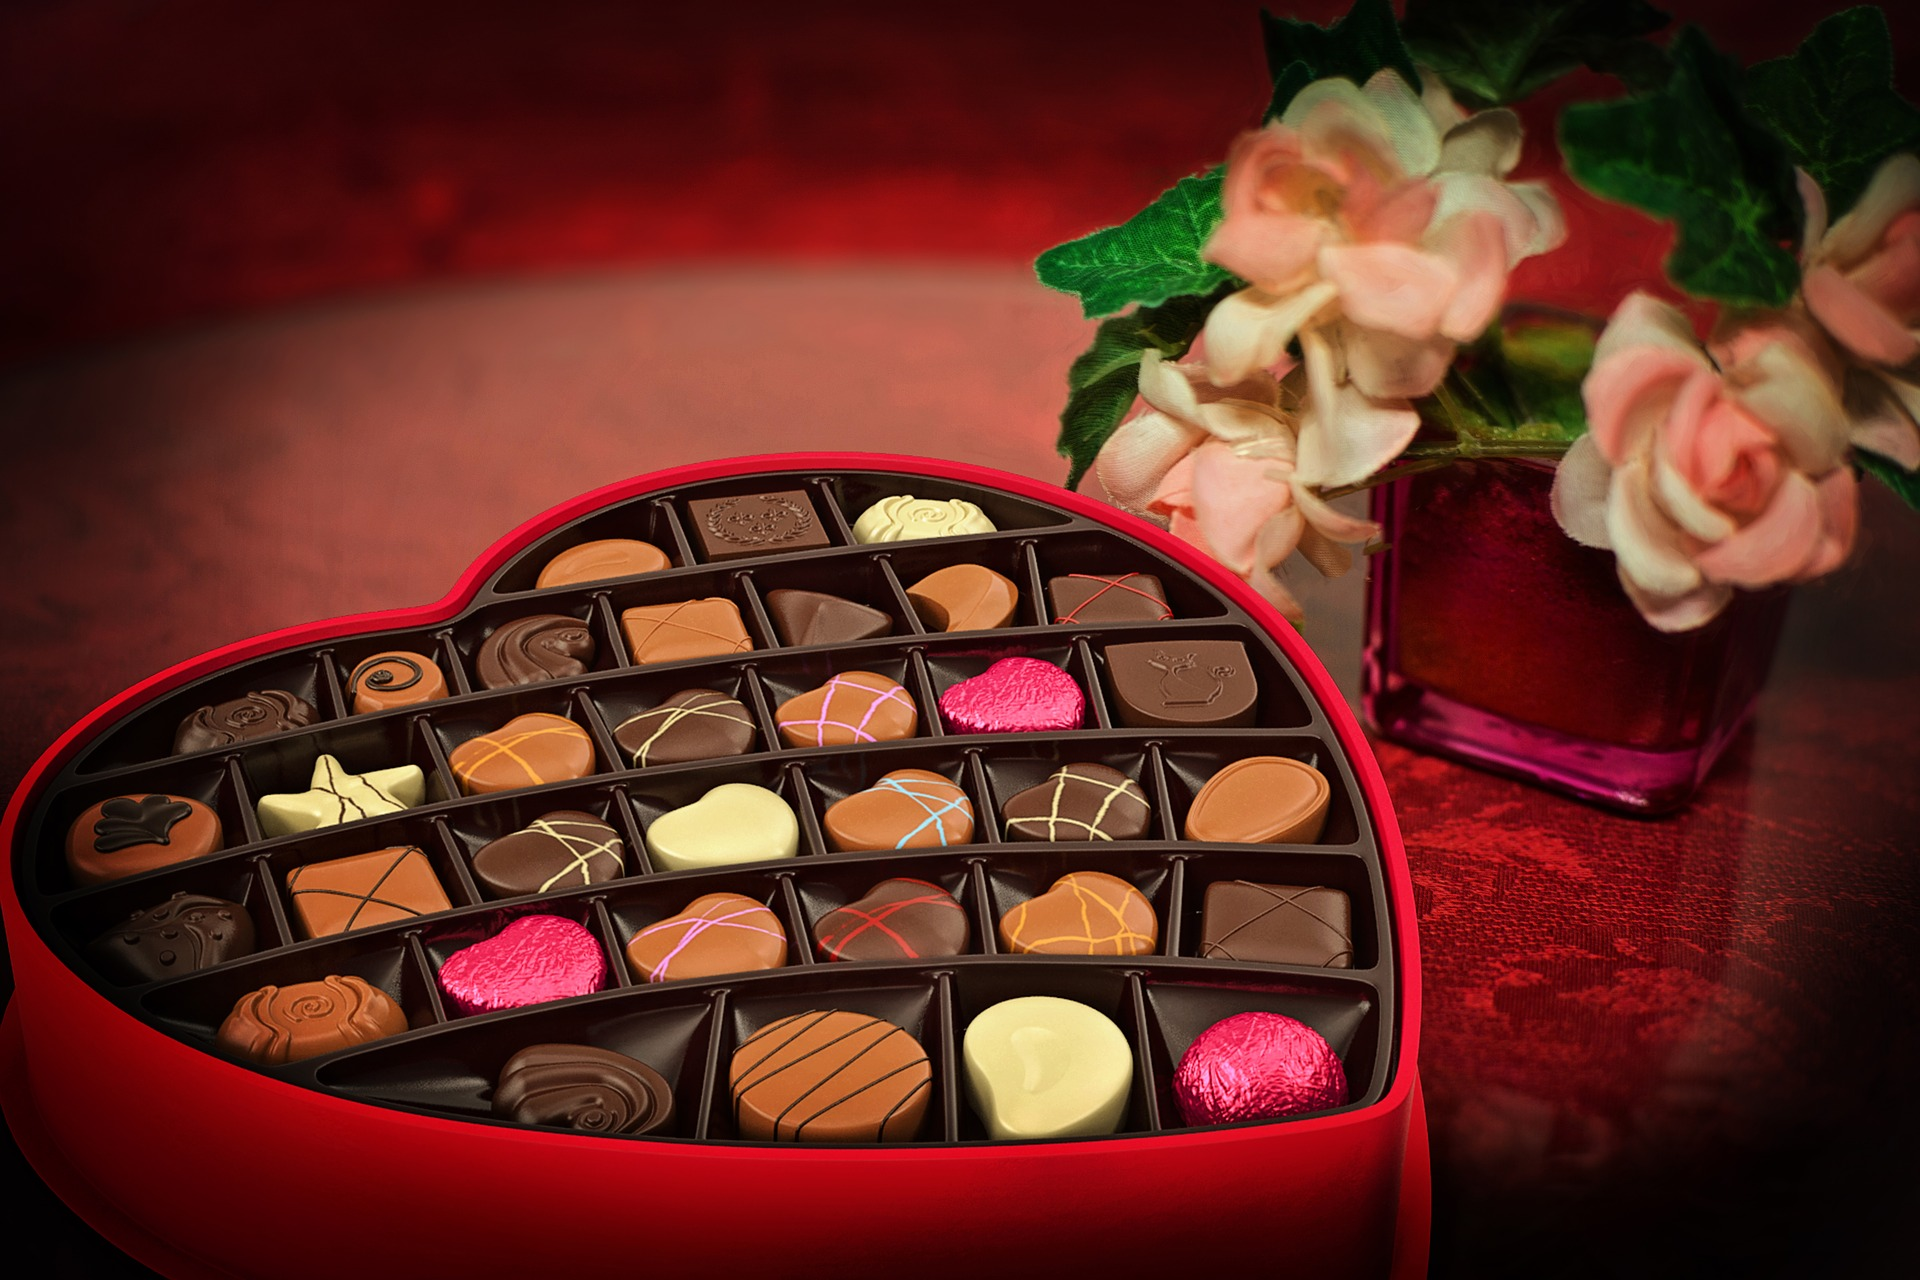 Romantic chocolates and flowers